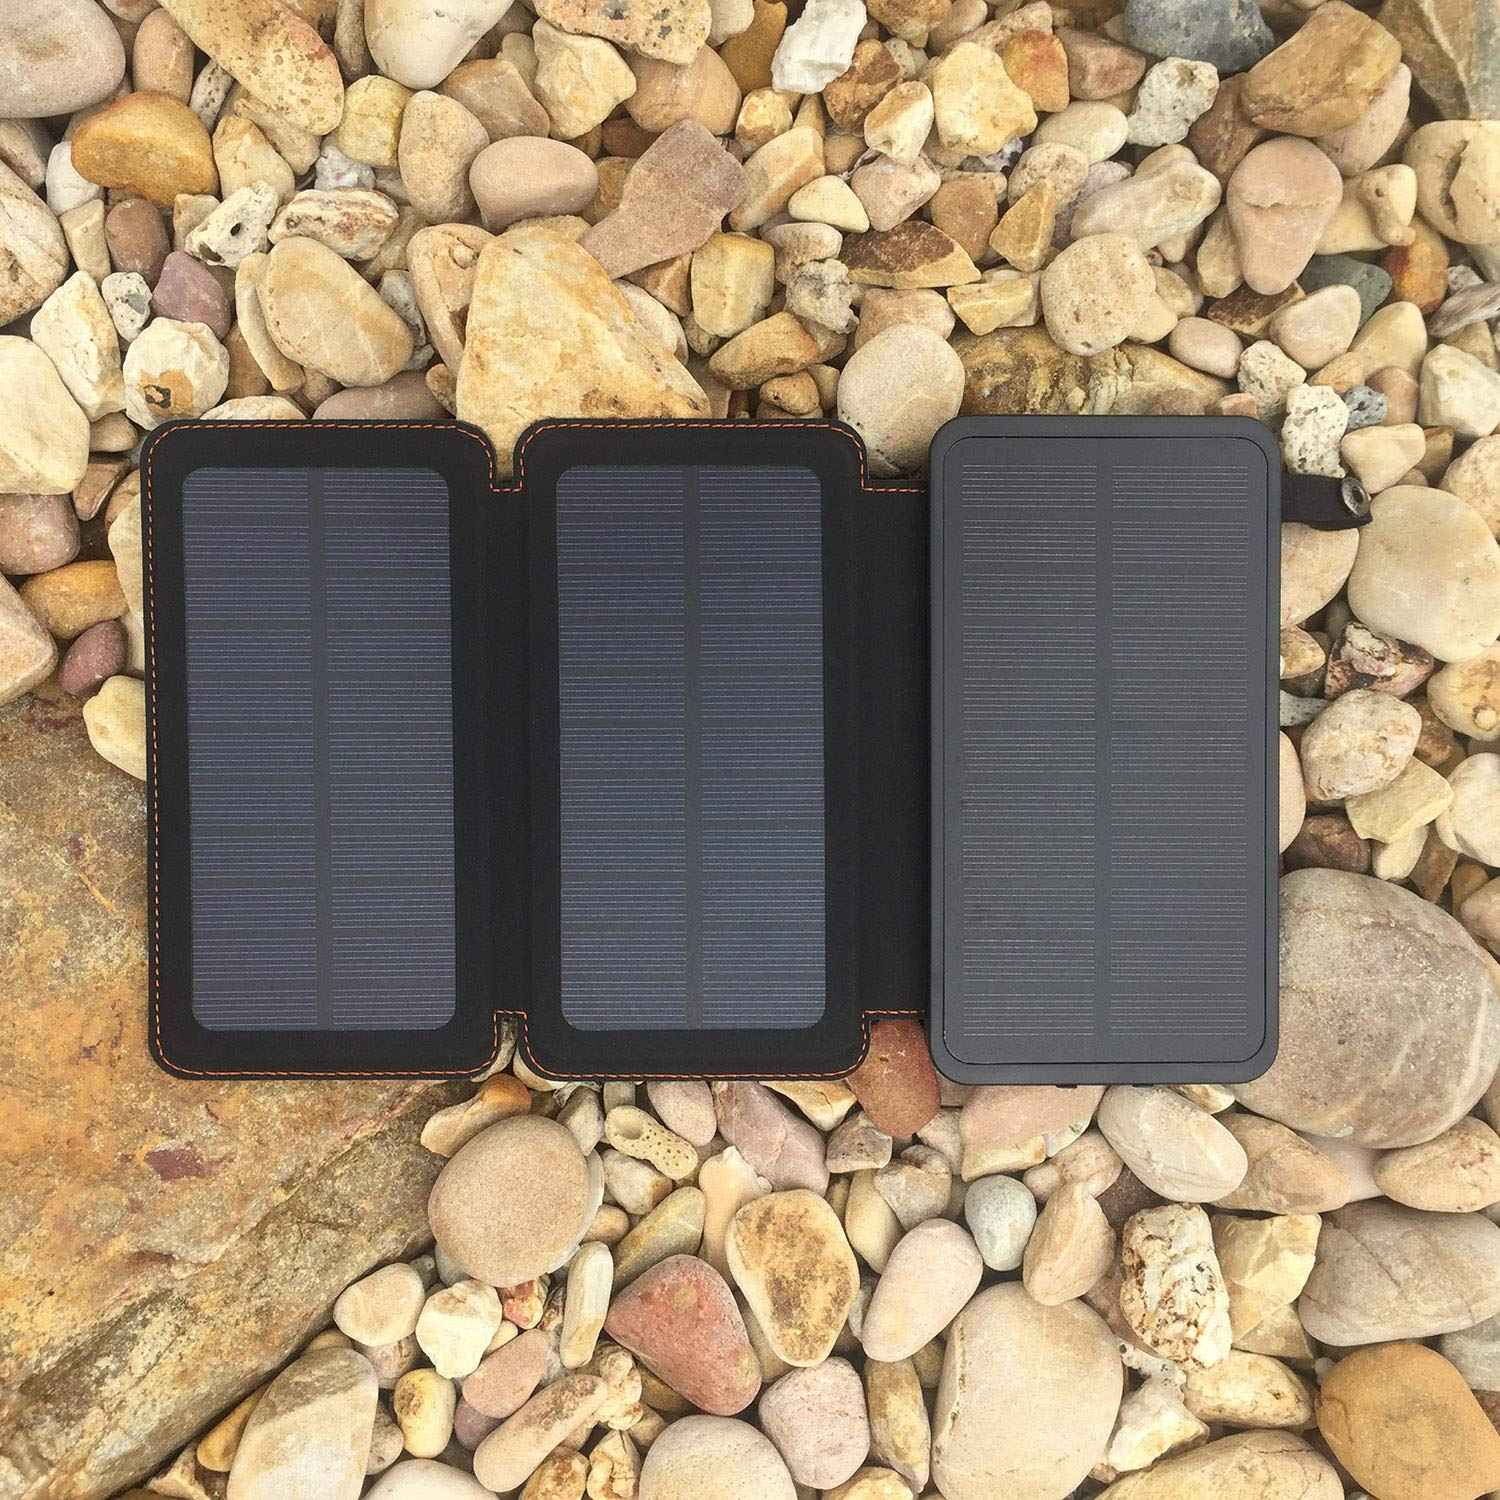 WBPINE Solar Charger 24000mAh,Solar Power Bank Waterproof Dual USB Output with 3 Solar Panels External Battery Bank Flashlights for Cellphone,Bluetooth Speaker and More Orange